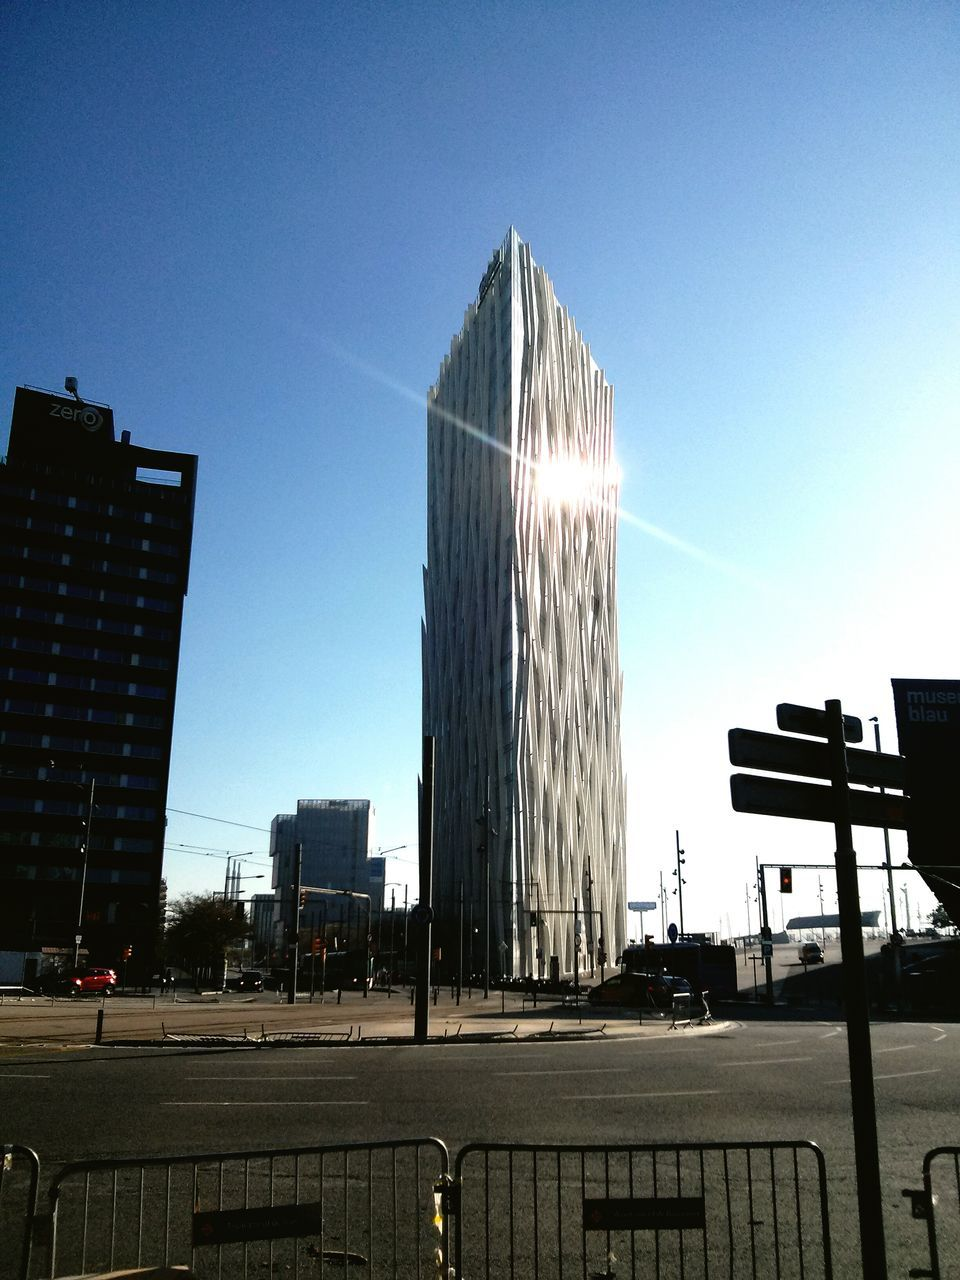 architecture, built structure, building exterior, clear sky, outdoors, city, sky, sunlight, day, blue, skyscraper, no people, modern